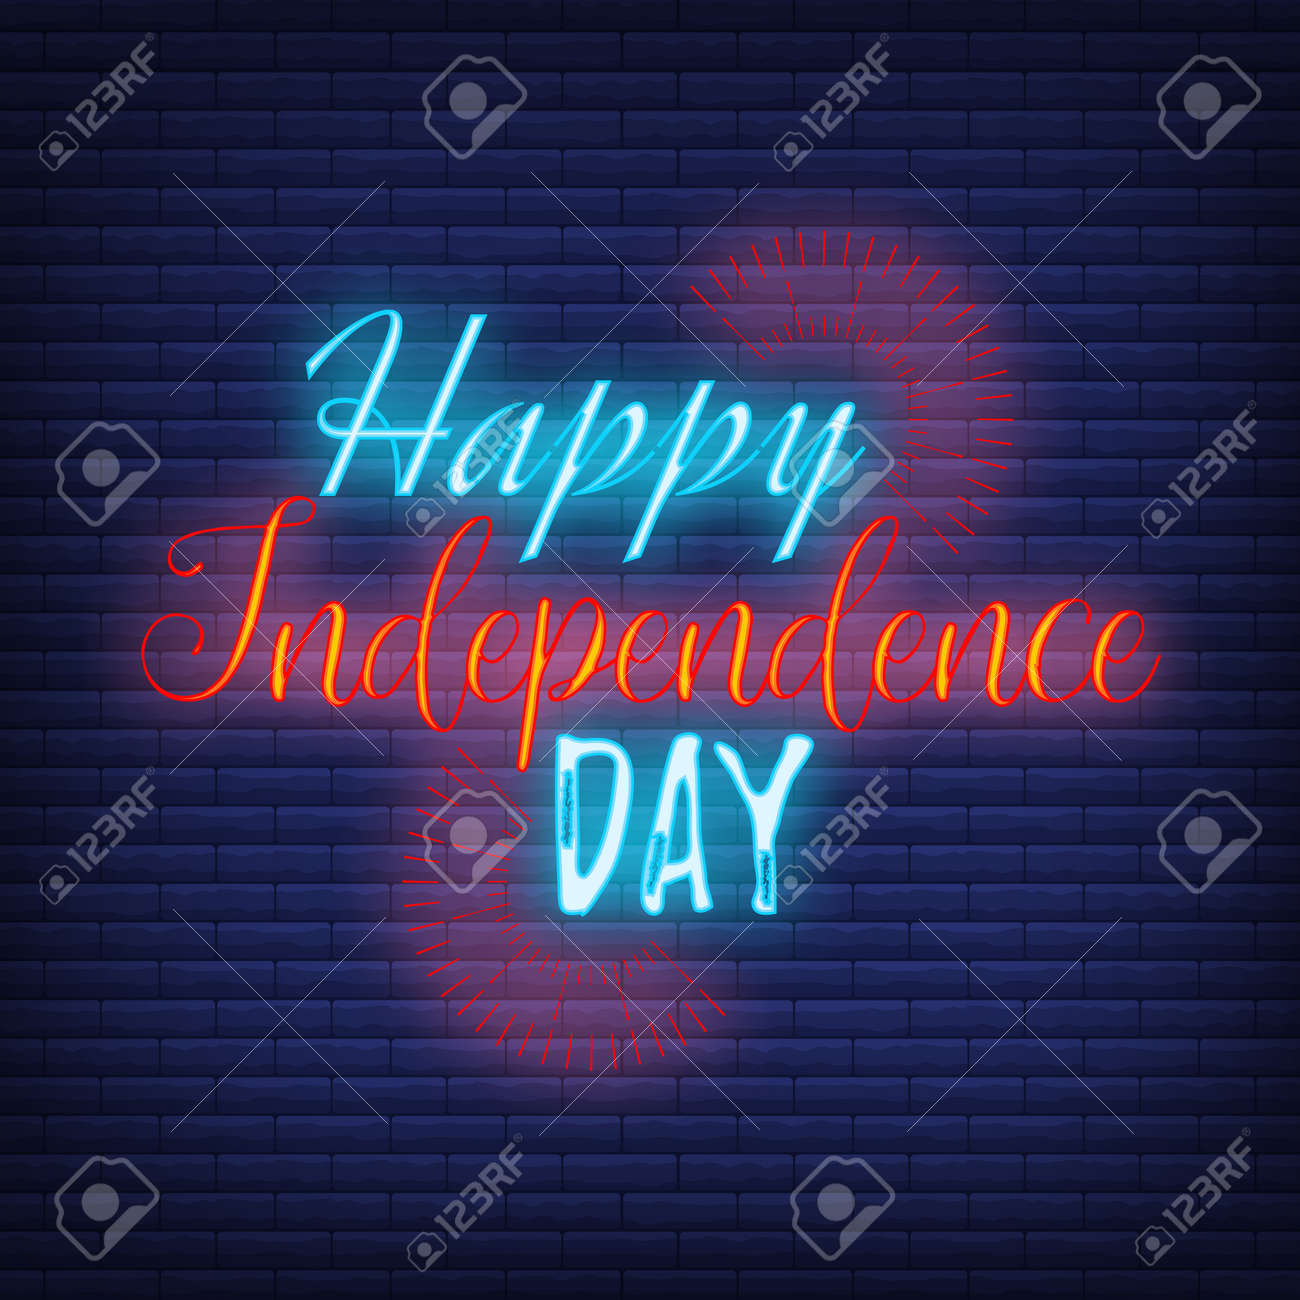 Happy celebration greeting card 4 th July, concept glow neon style font text Independence Day quote phrase vector illustration on black wall background. - 167324084